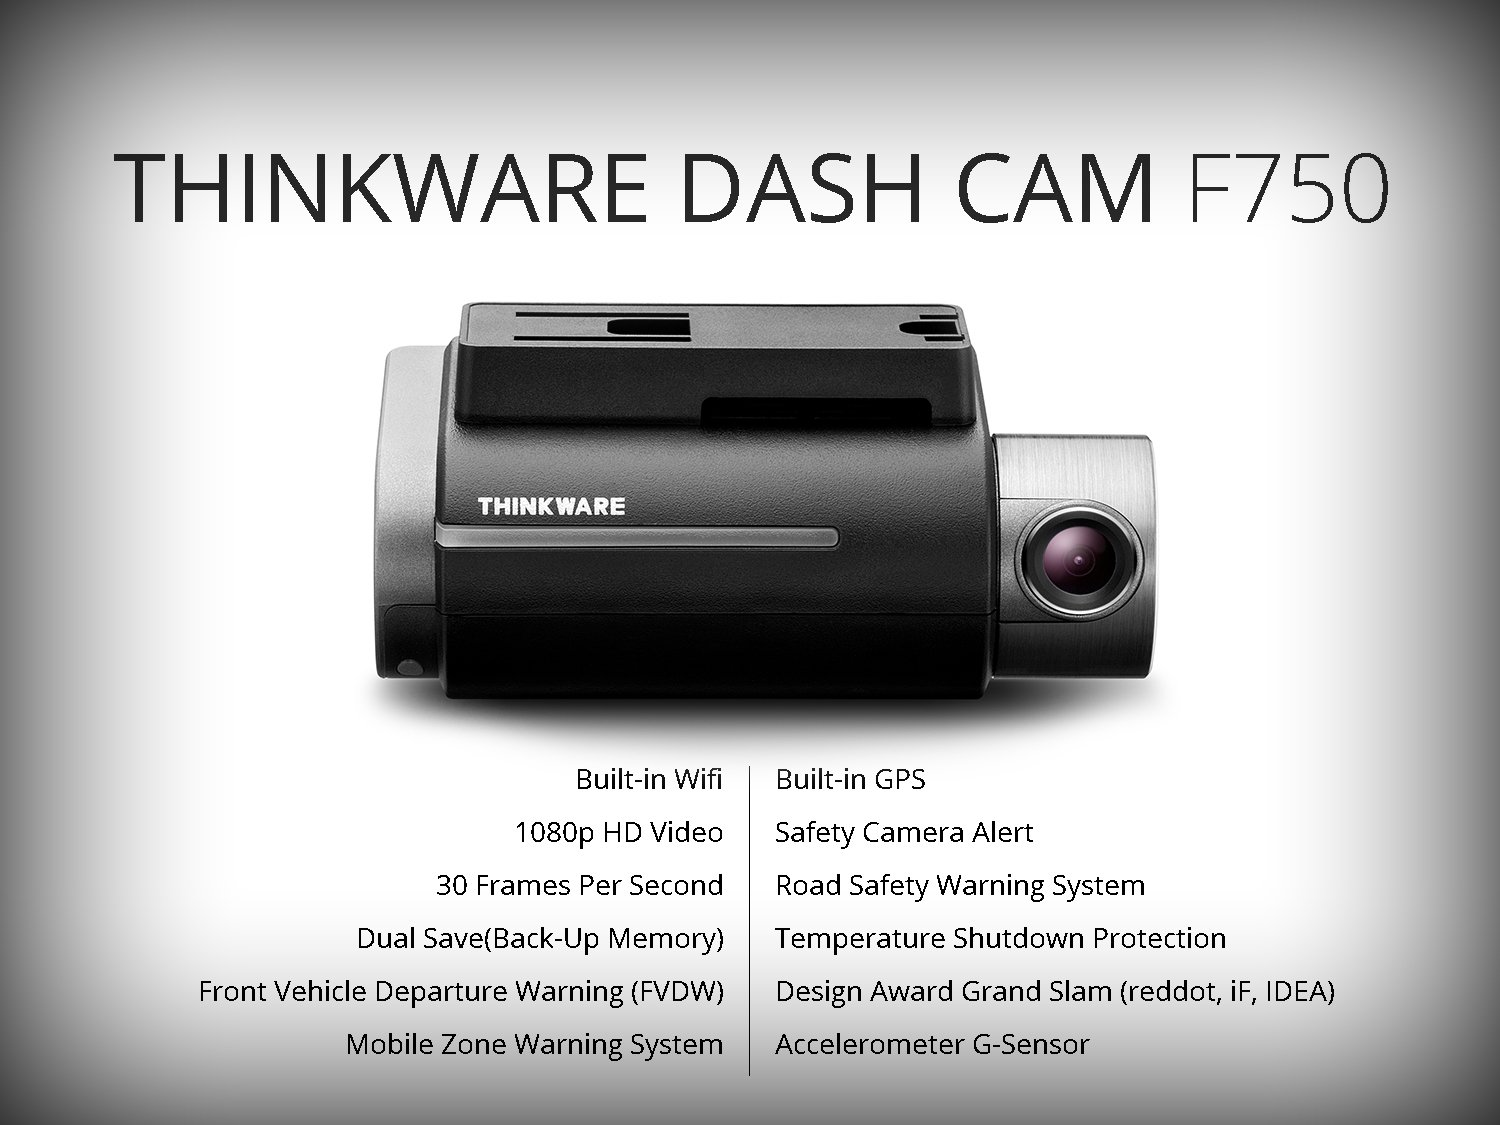 THINKWARE TW-F750D16 F750 2-Channel Dash Cam, 1080P HD Front & Rear, Sony Exmor Sensor, Wi-Fi, Dual Save Technology, Parking Mode, GPS, 16GB SD Card by Thinkware (Image #1)